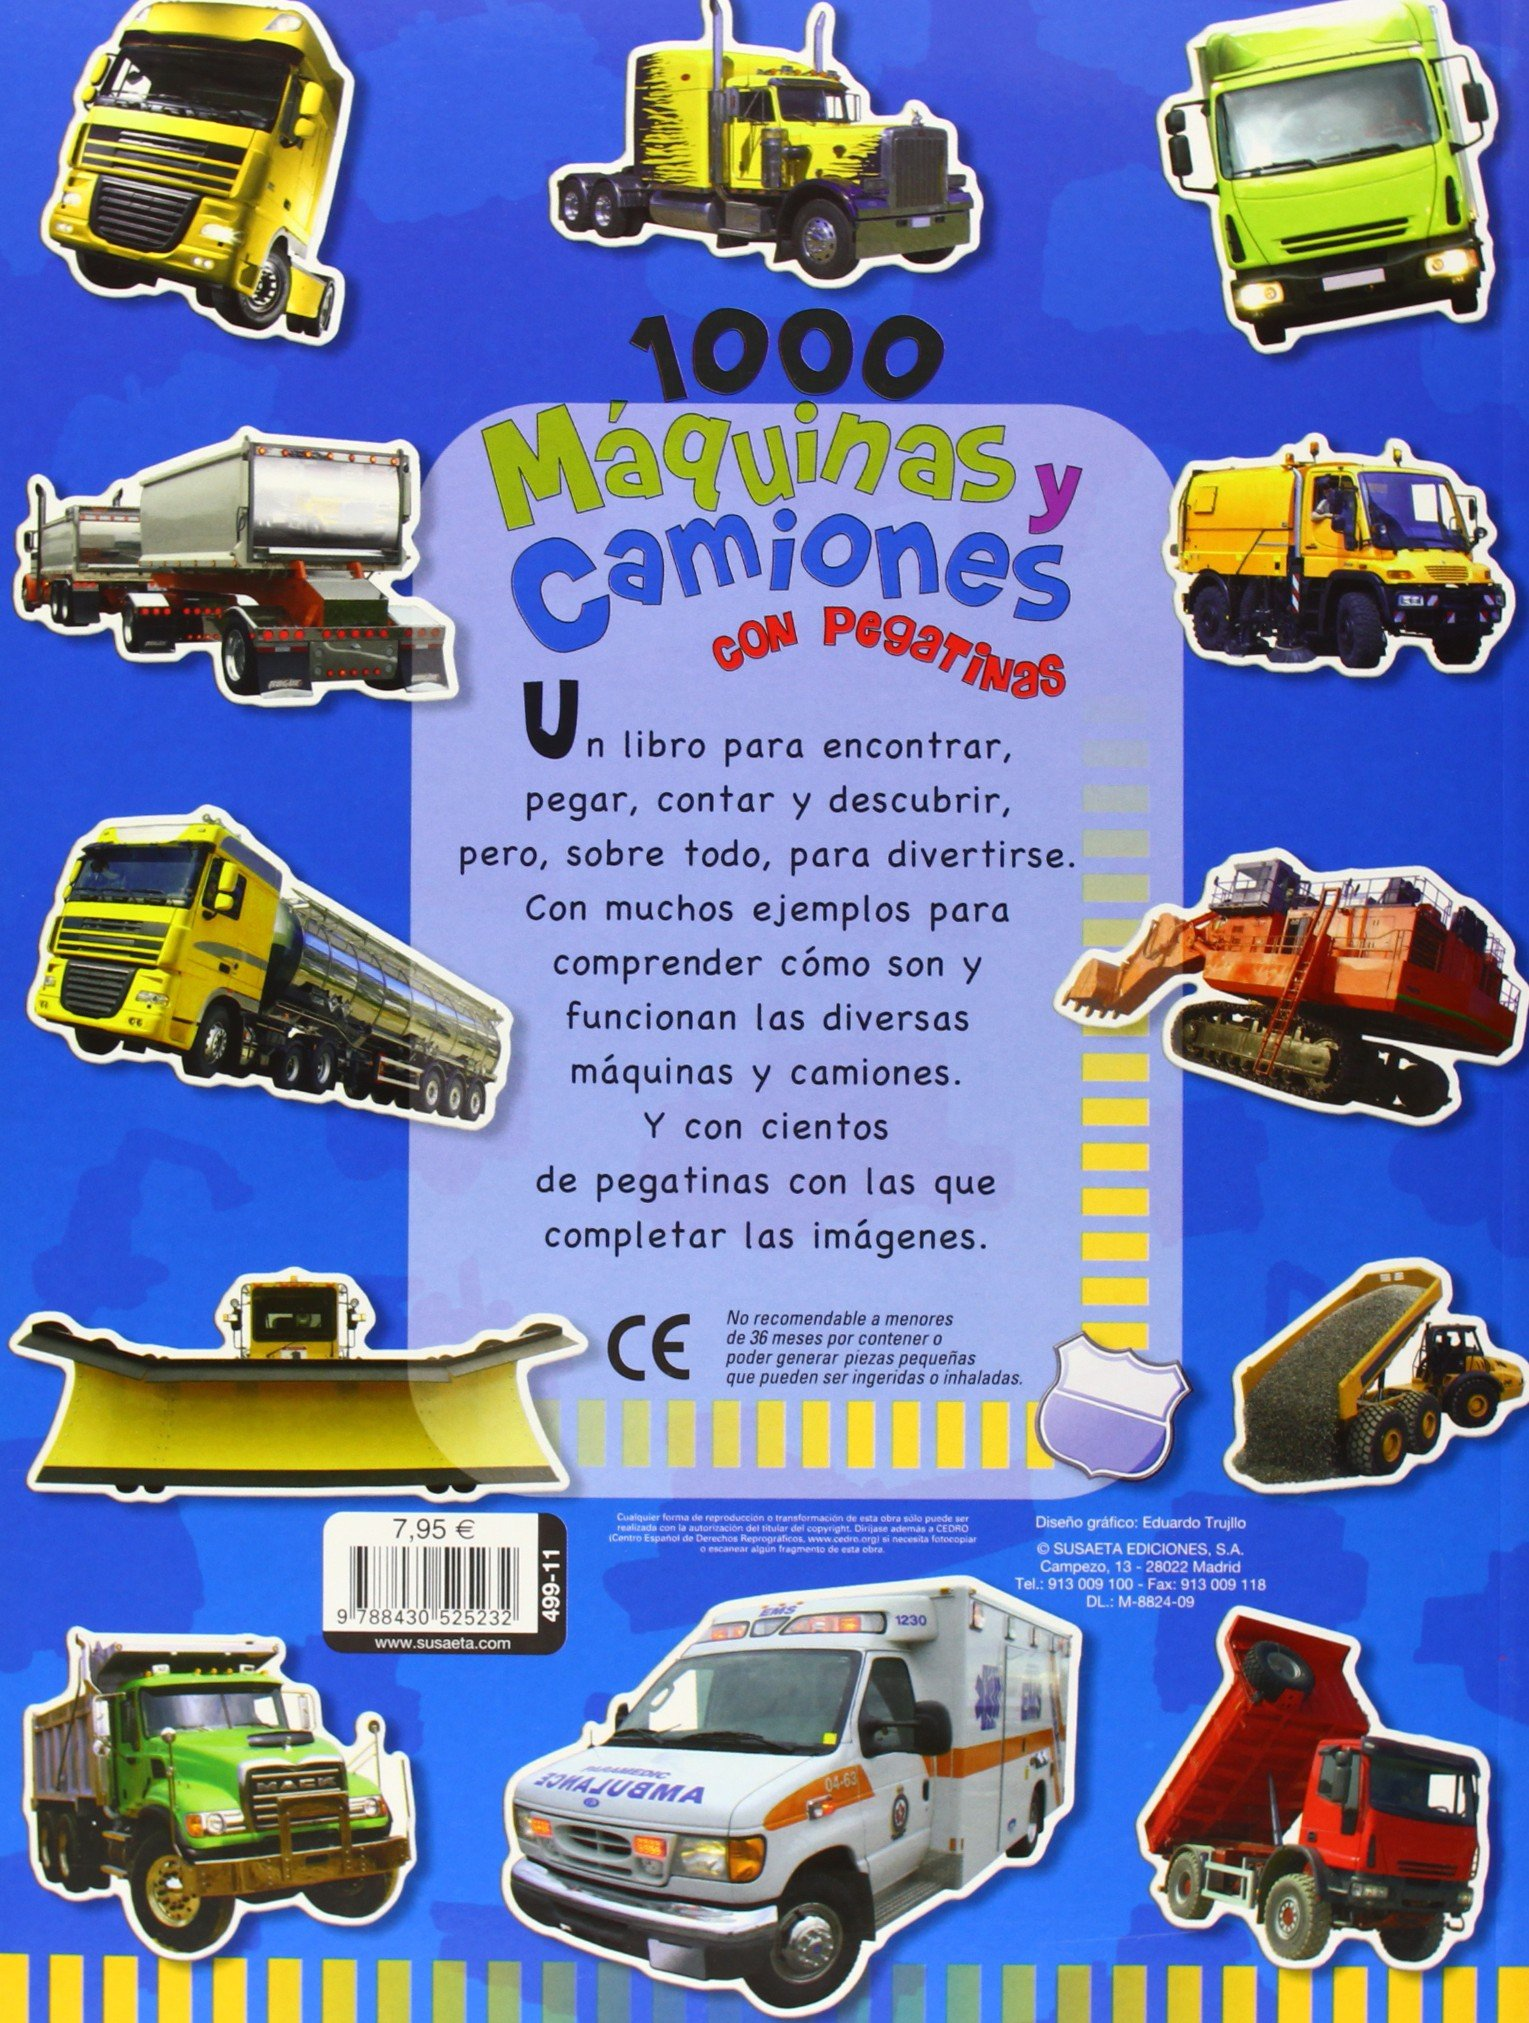 1000 máquinas y camiones: Con pegatinas (Spanish Edition): Inc. Susaeta Publishing: 9788430525232: Amazon.com: Books